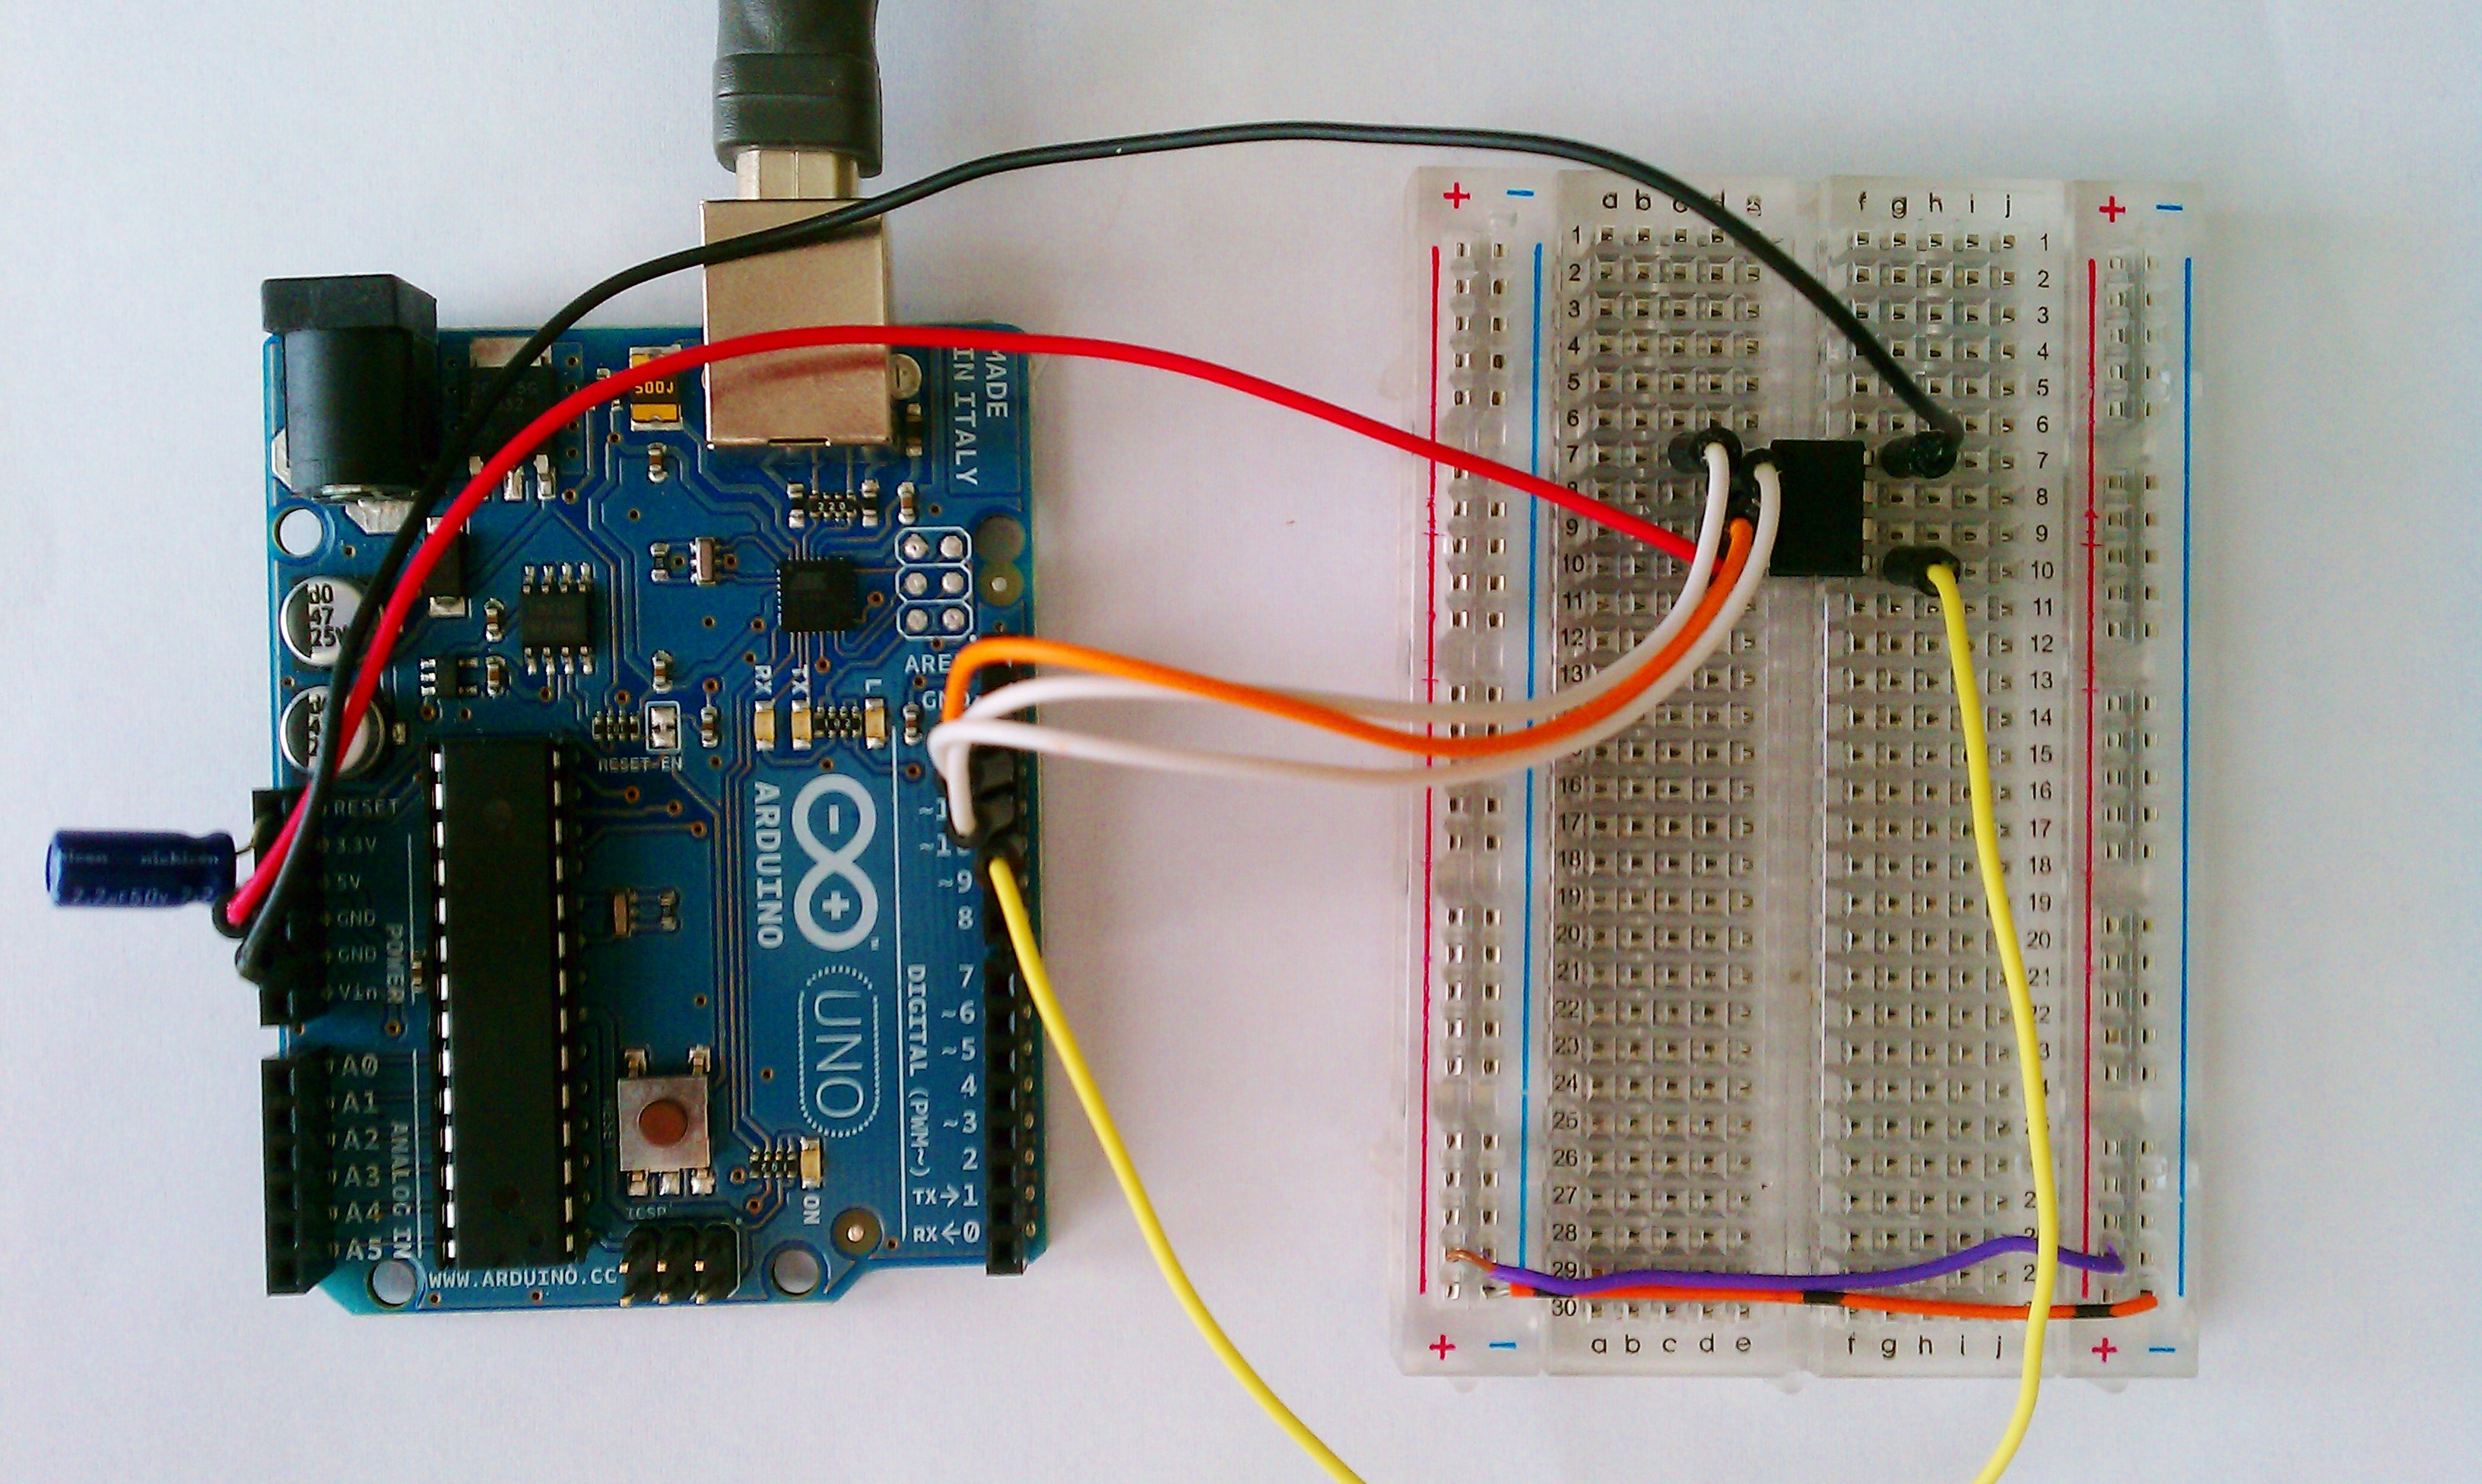 Arduino upload hex files to attiny using your